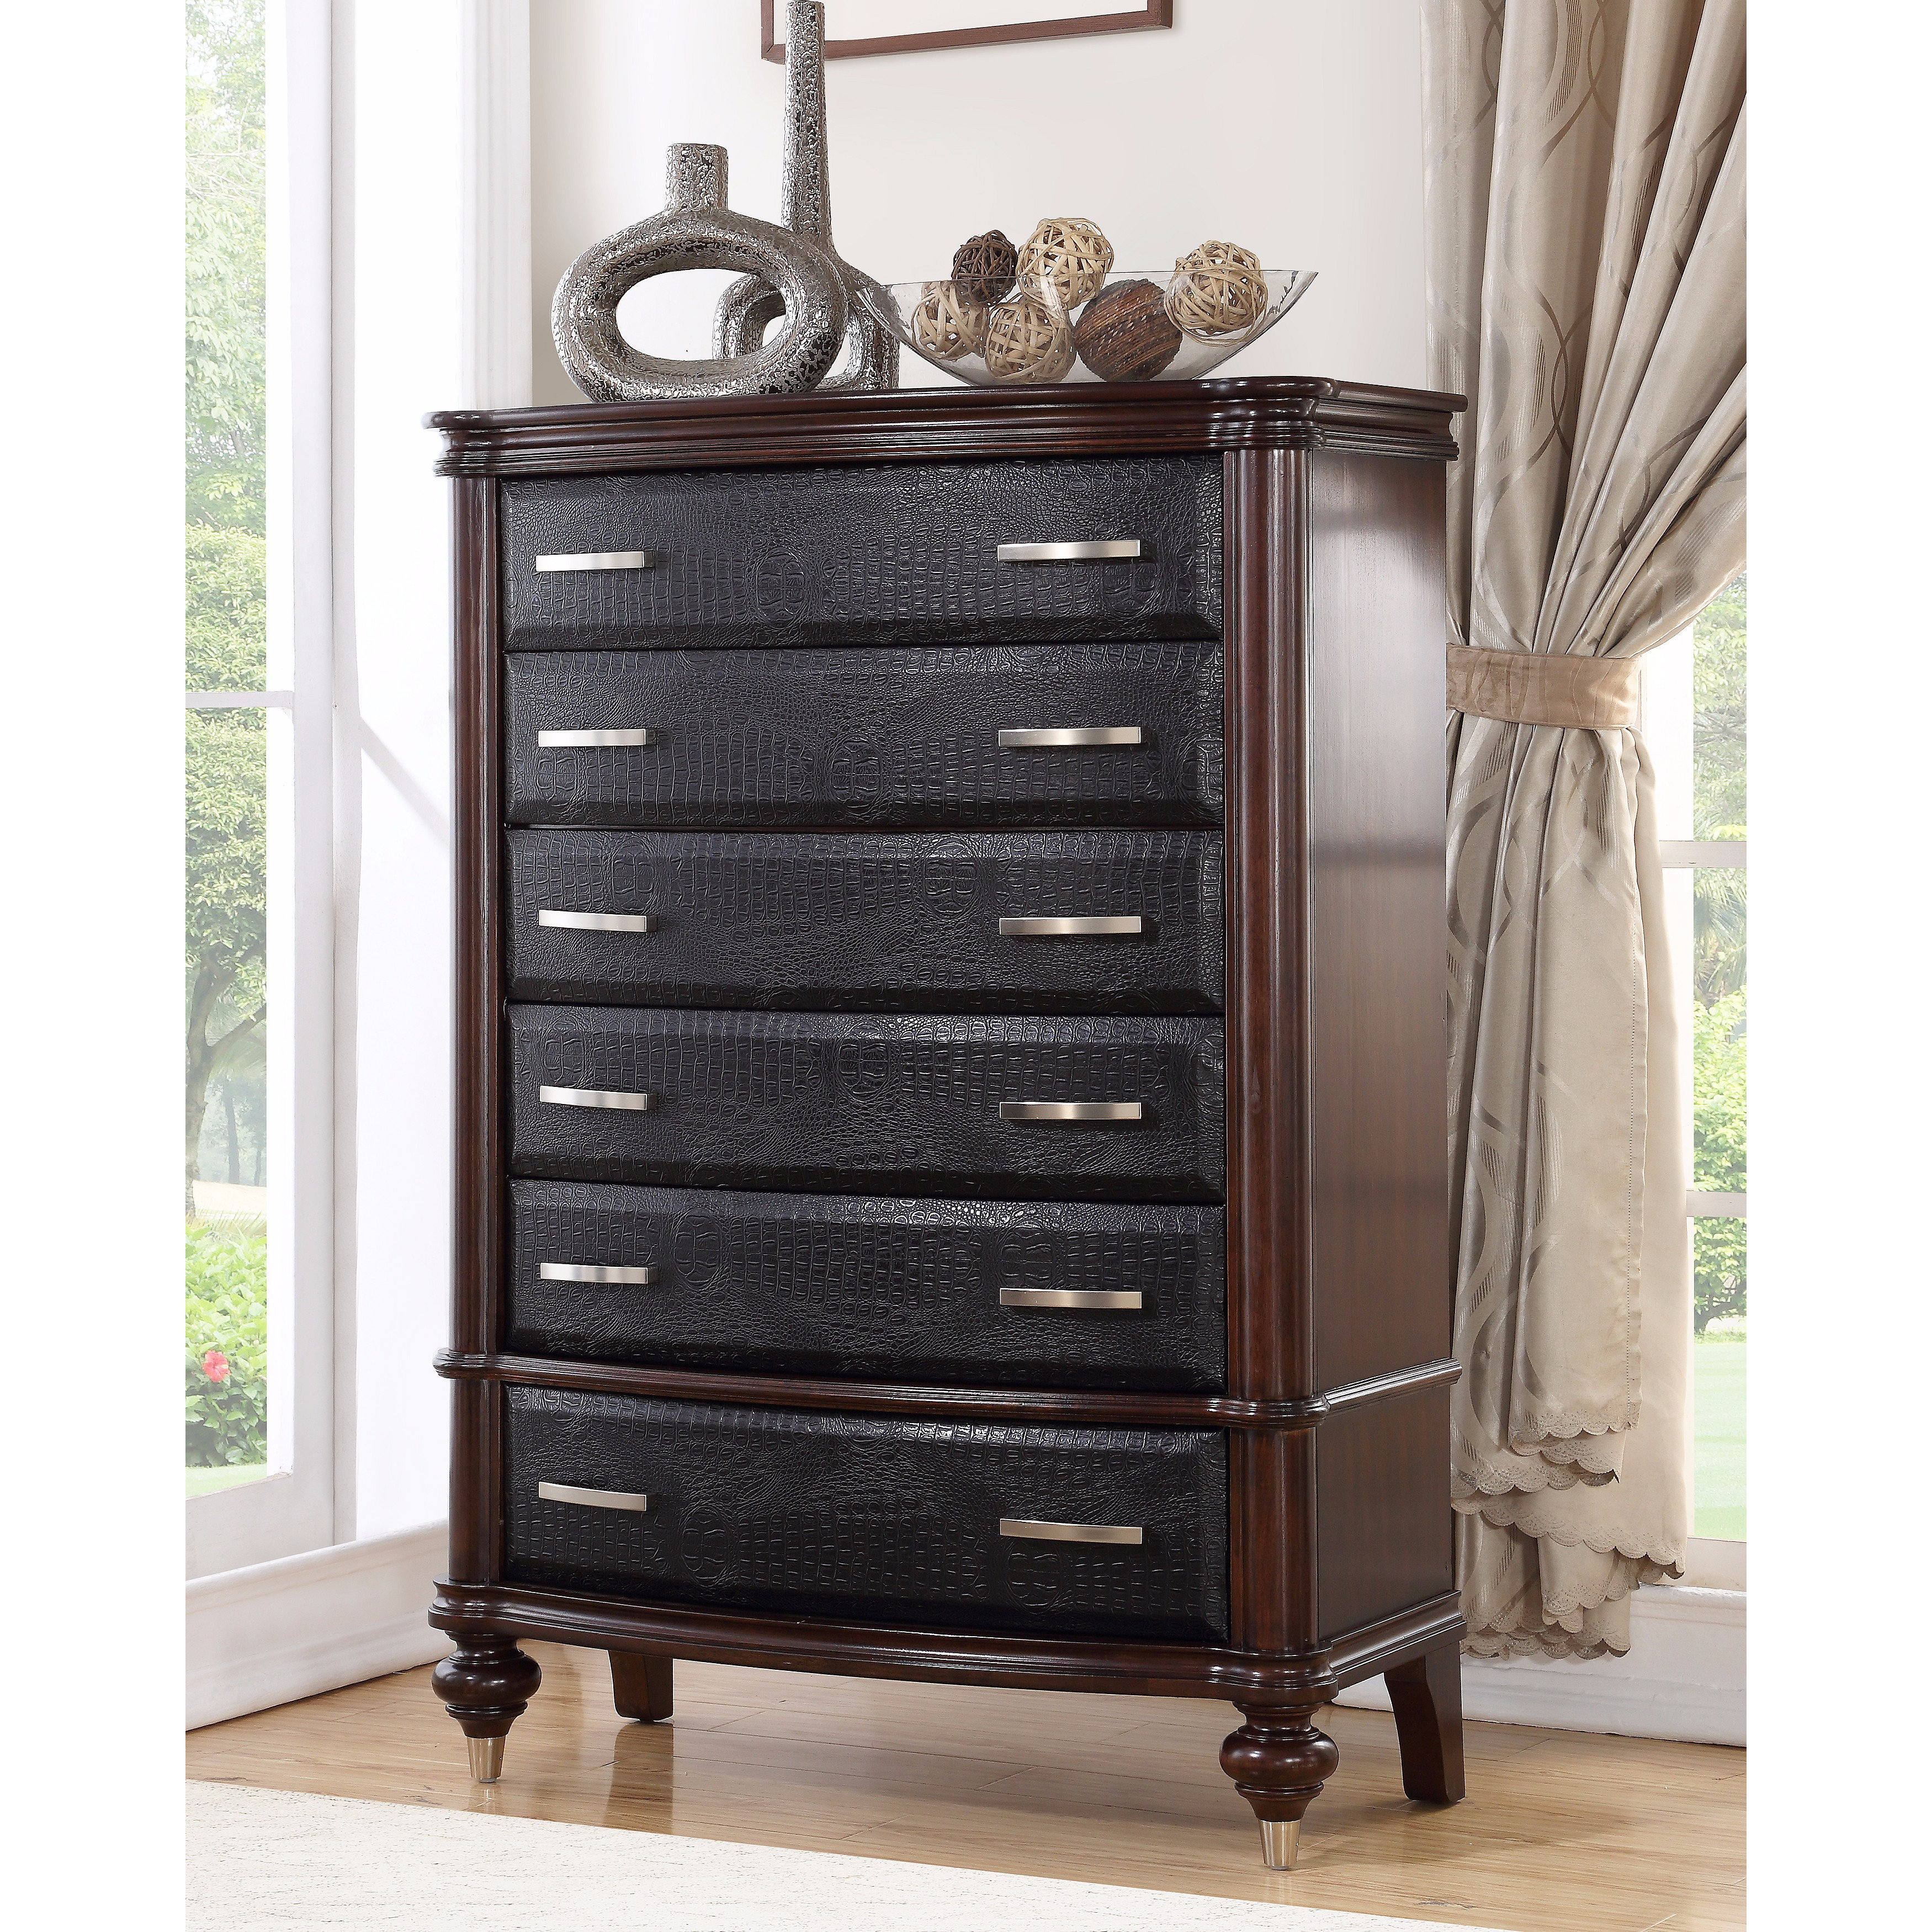 when saw the bois years in it macgirlver leather for i dresser first with was white thought a makeover got several store faux wanted good cover price ago my to that copy from